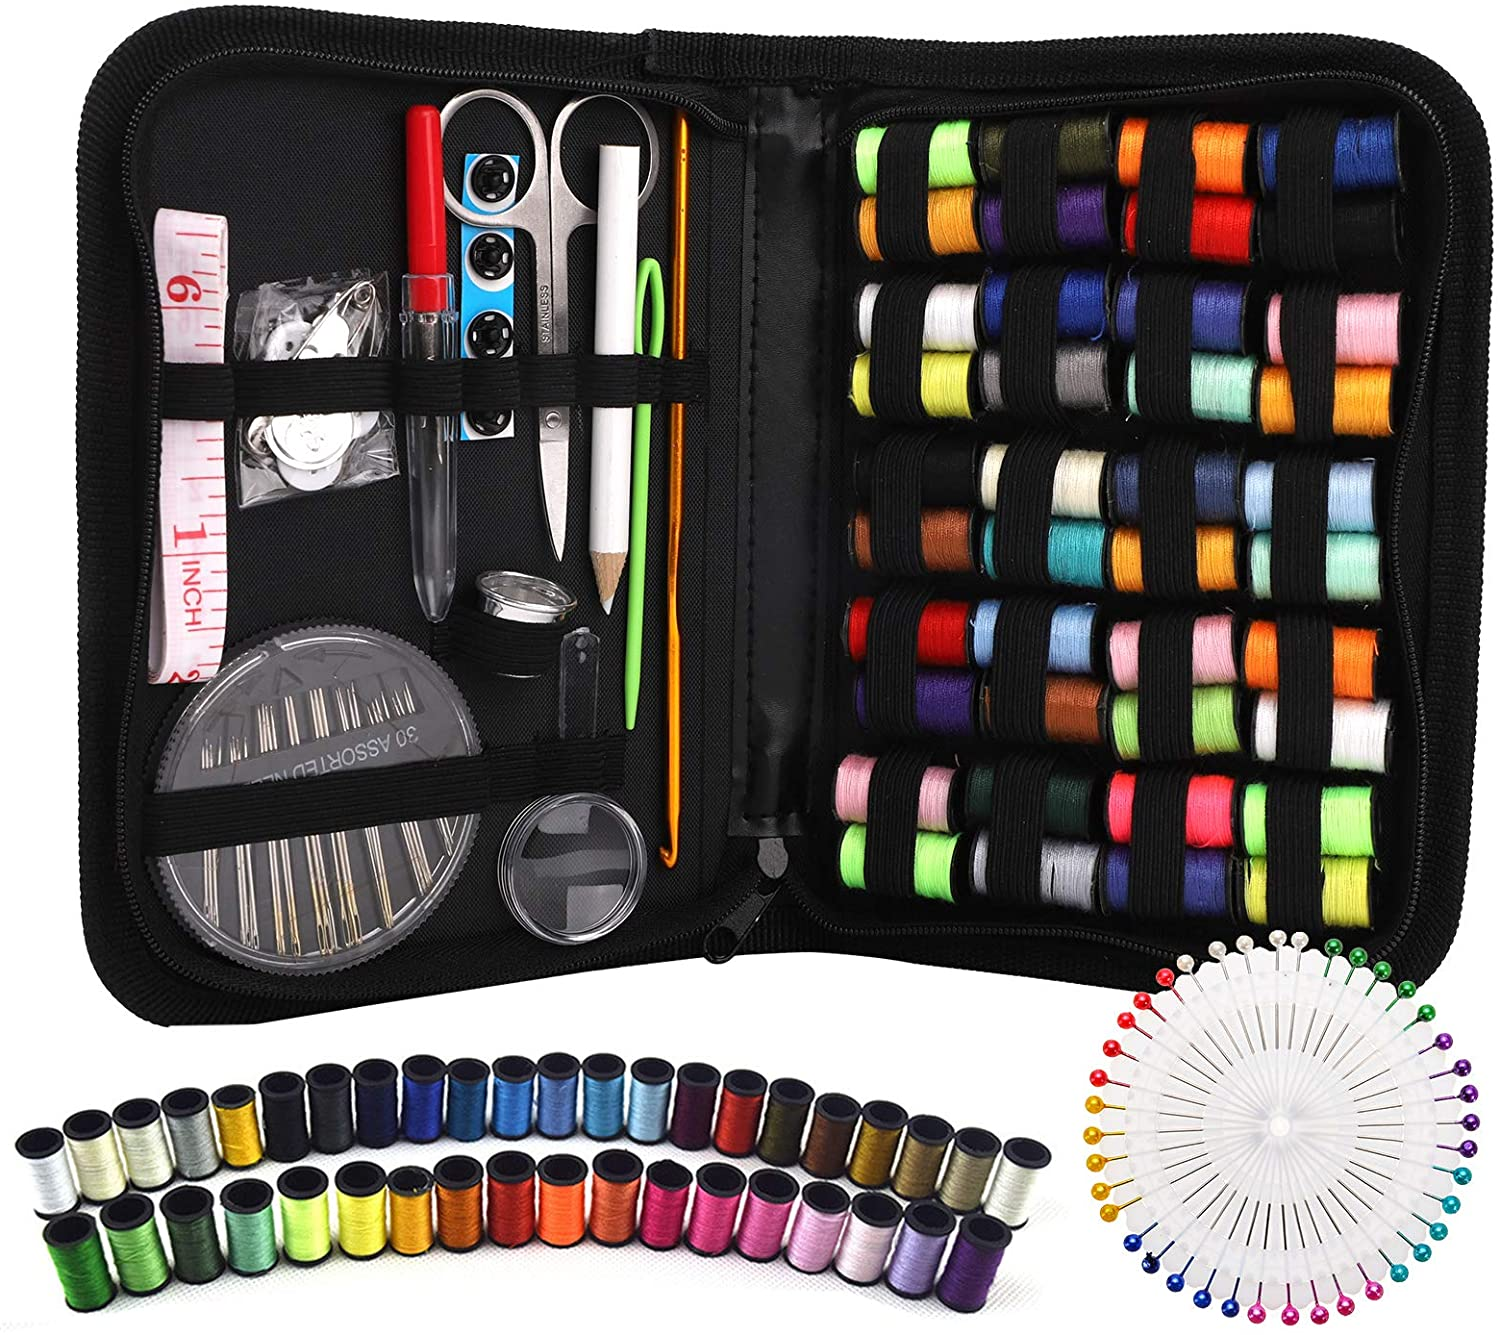 BCMRUN Sewing Crochet Kit,Portable Complete Needle Thread Kit with Zipper,Emergency Sewing Repair Organizer Incudes Threads Scissors Crochet Thimble Knitting Accessories for Traveler Beginners (S)